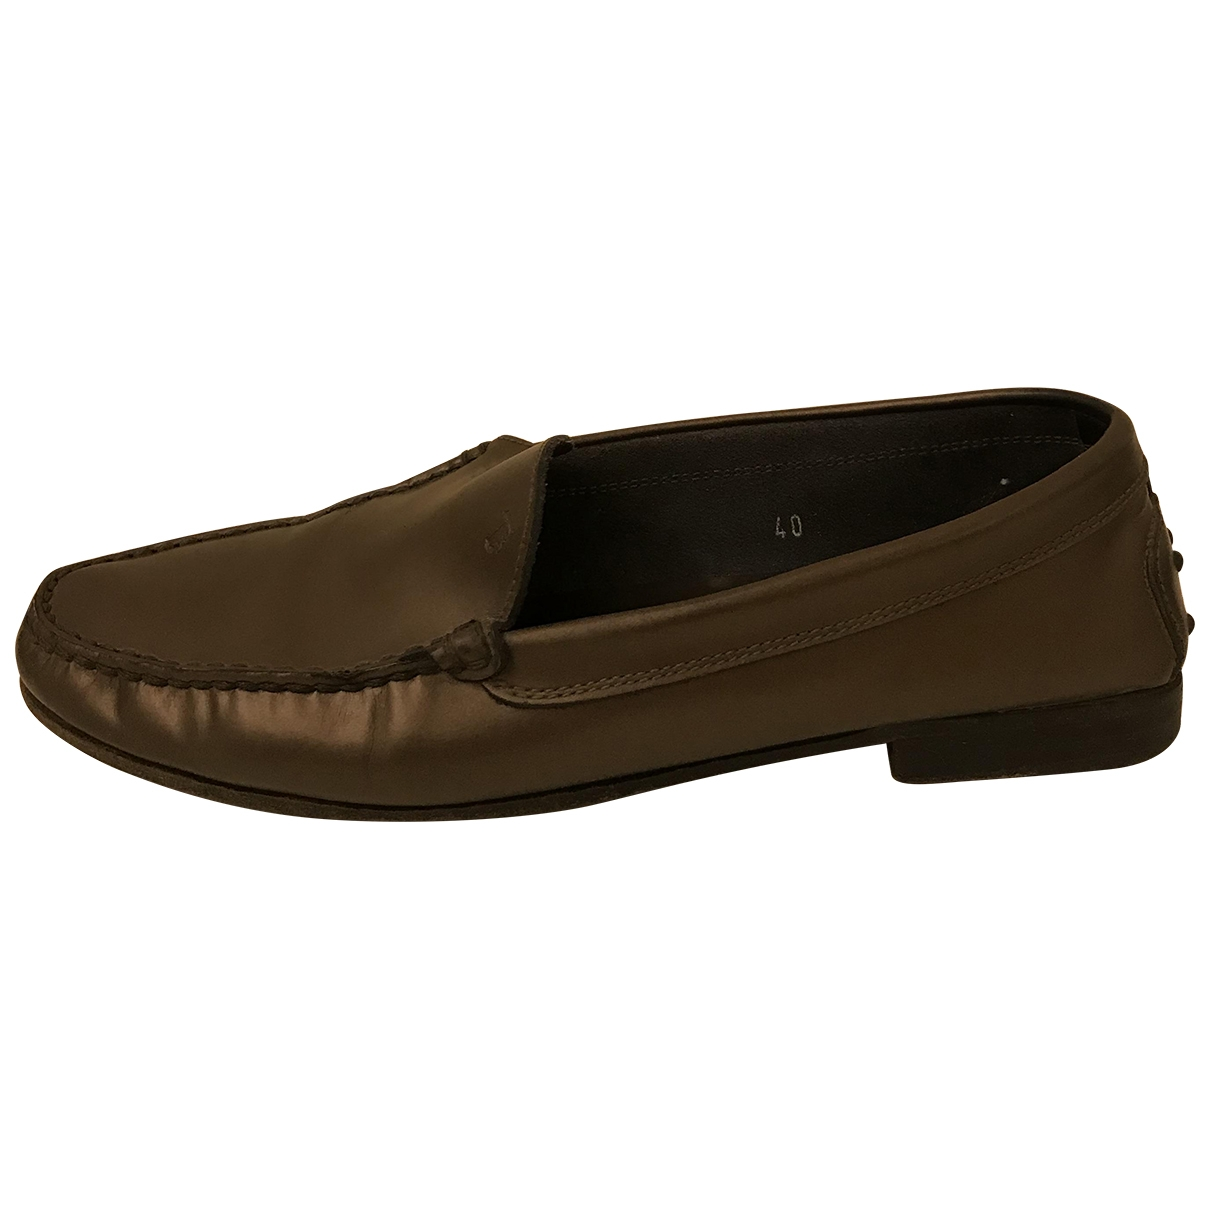 Tod's \N Brown Leather Flats for Women 40 IT